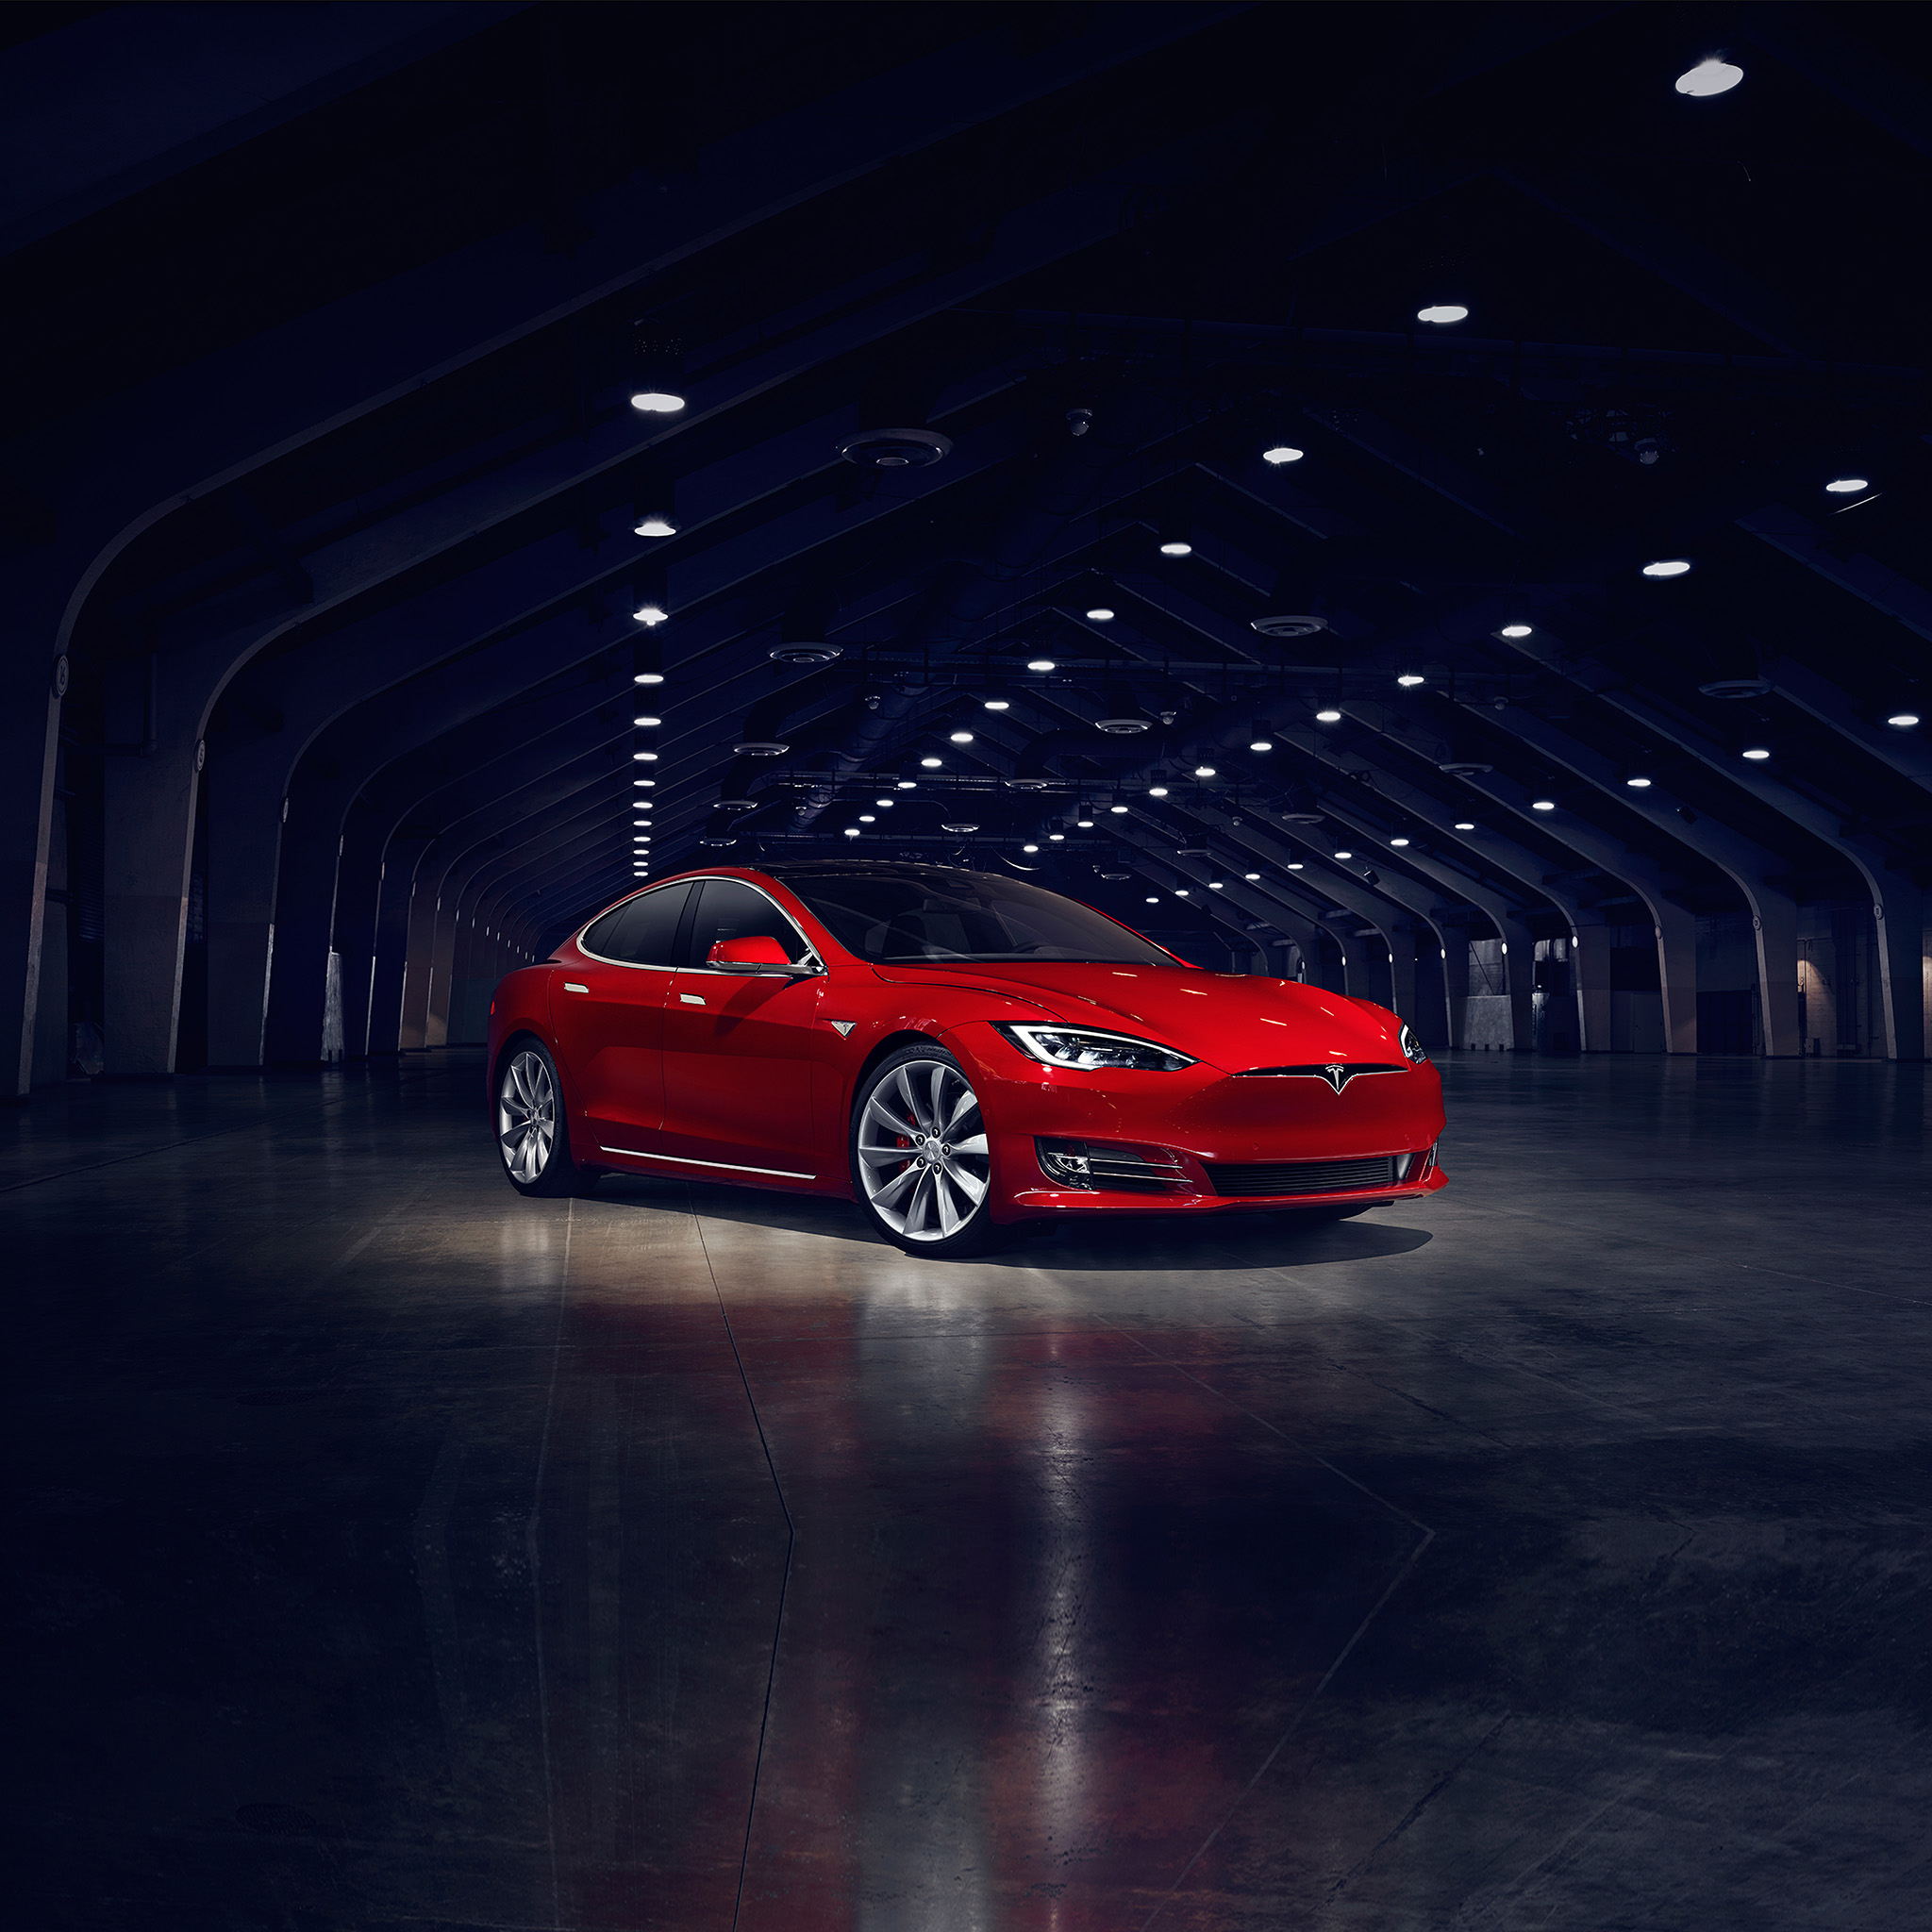 Tesla Model 3 Wallpaper Iphone: IPad